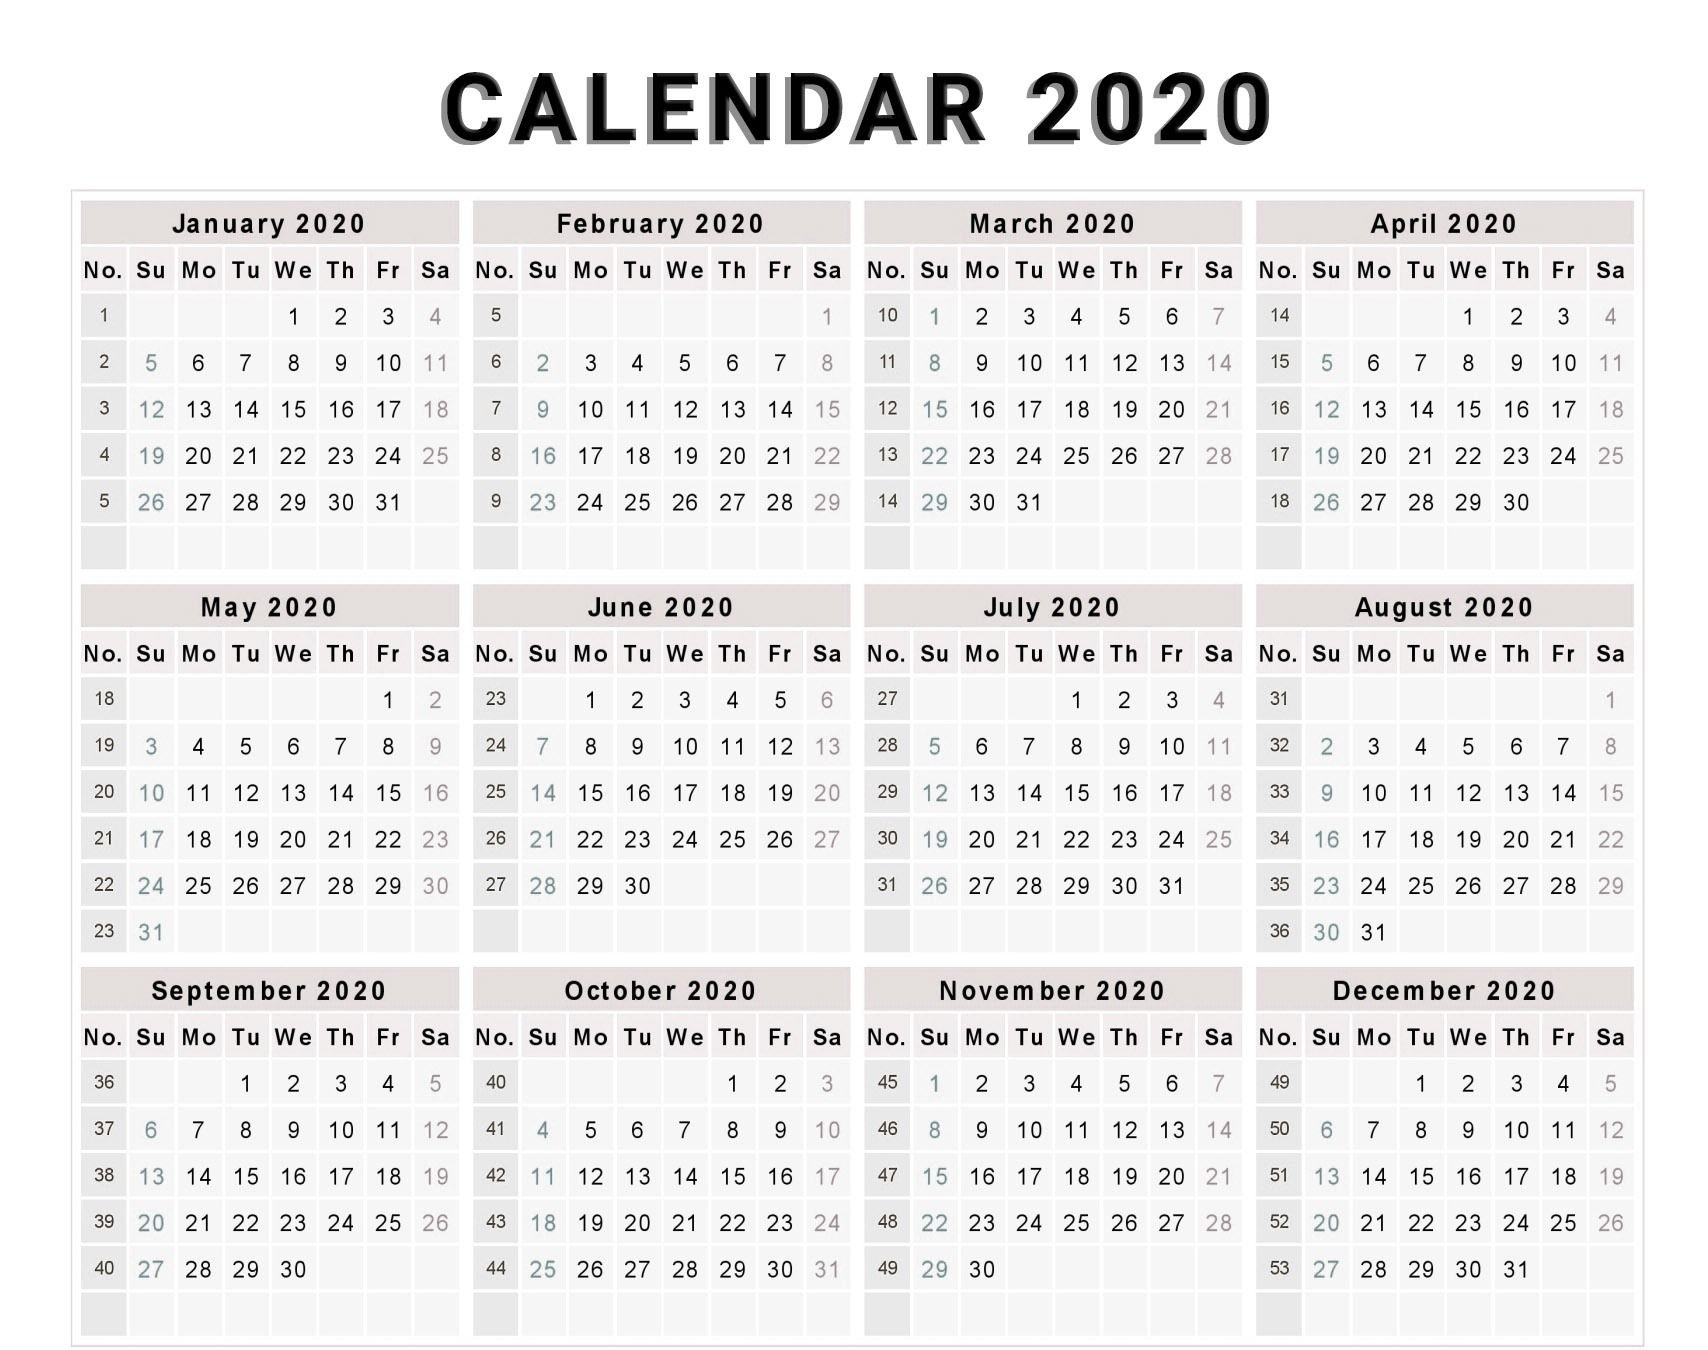 Calendar 2020 Free Template With Weeks | Free Calendar Remarkable Nsw Calendar 2020 Free Printable